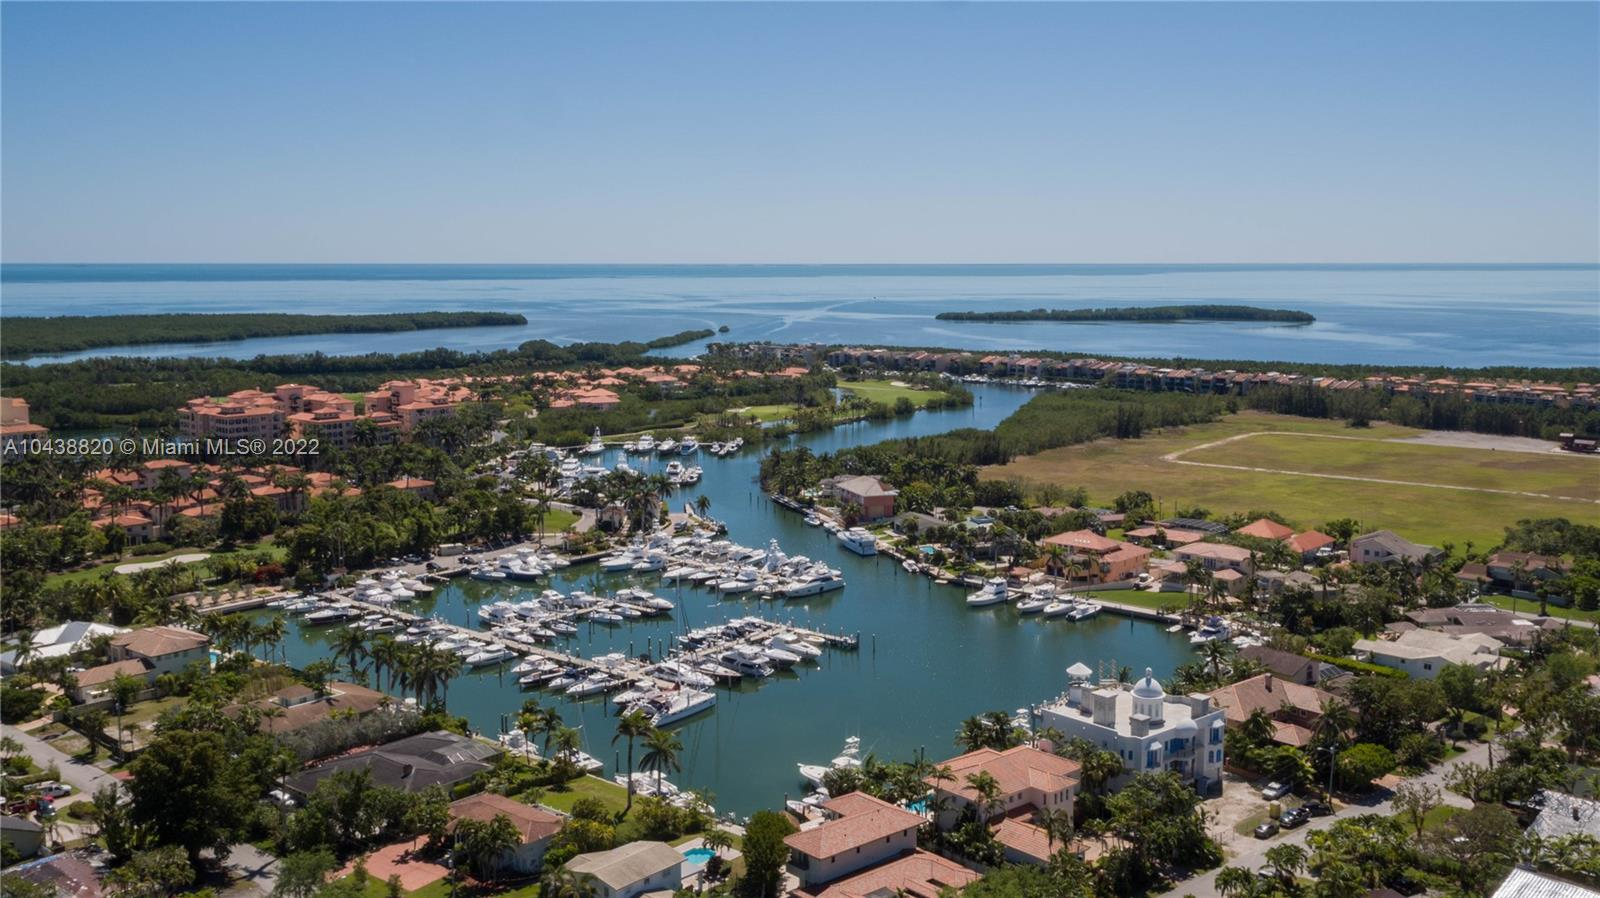 6275 Dolphin Dr, Kendall, Florida